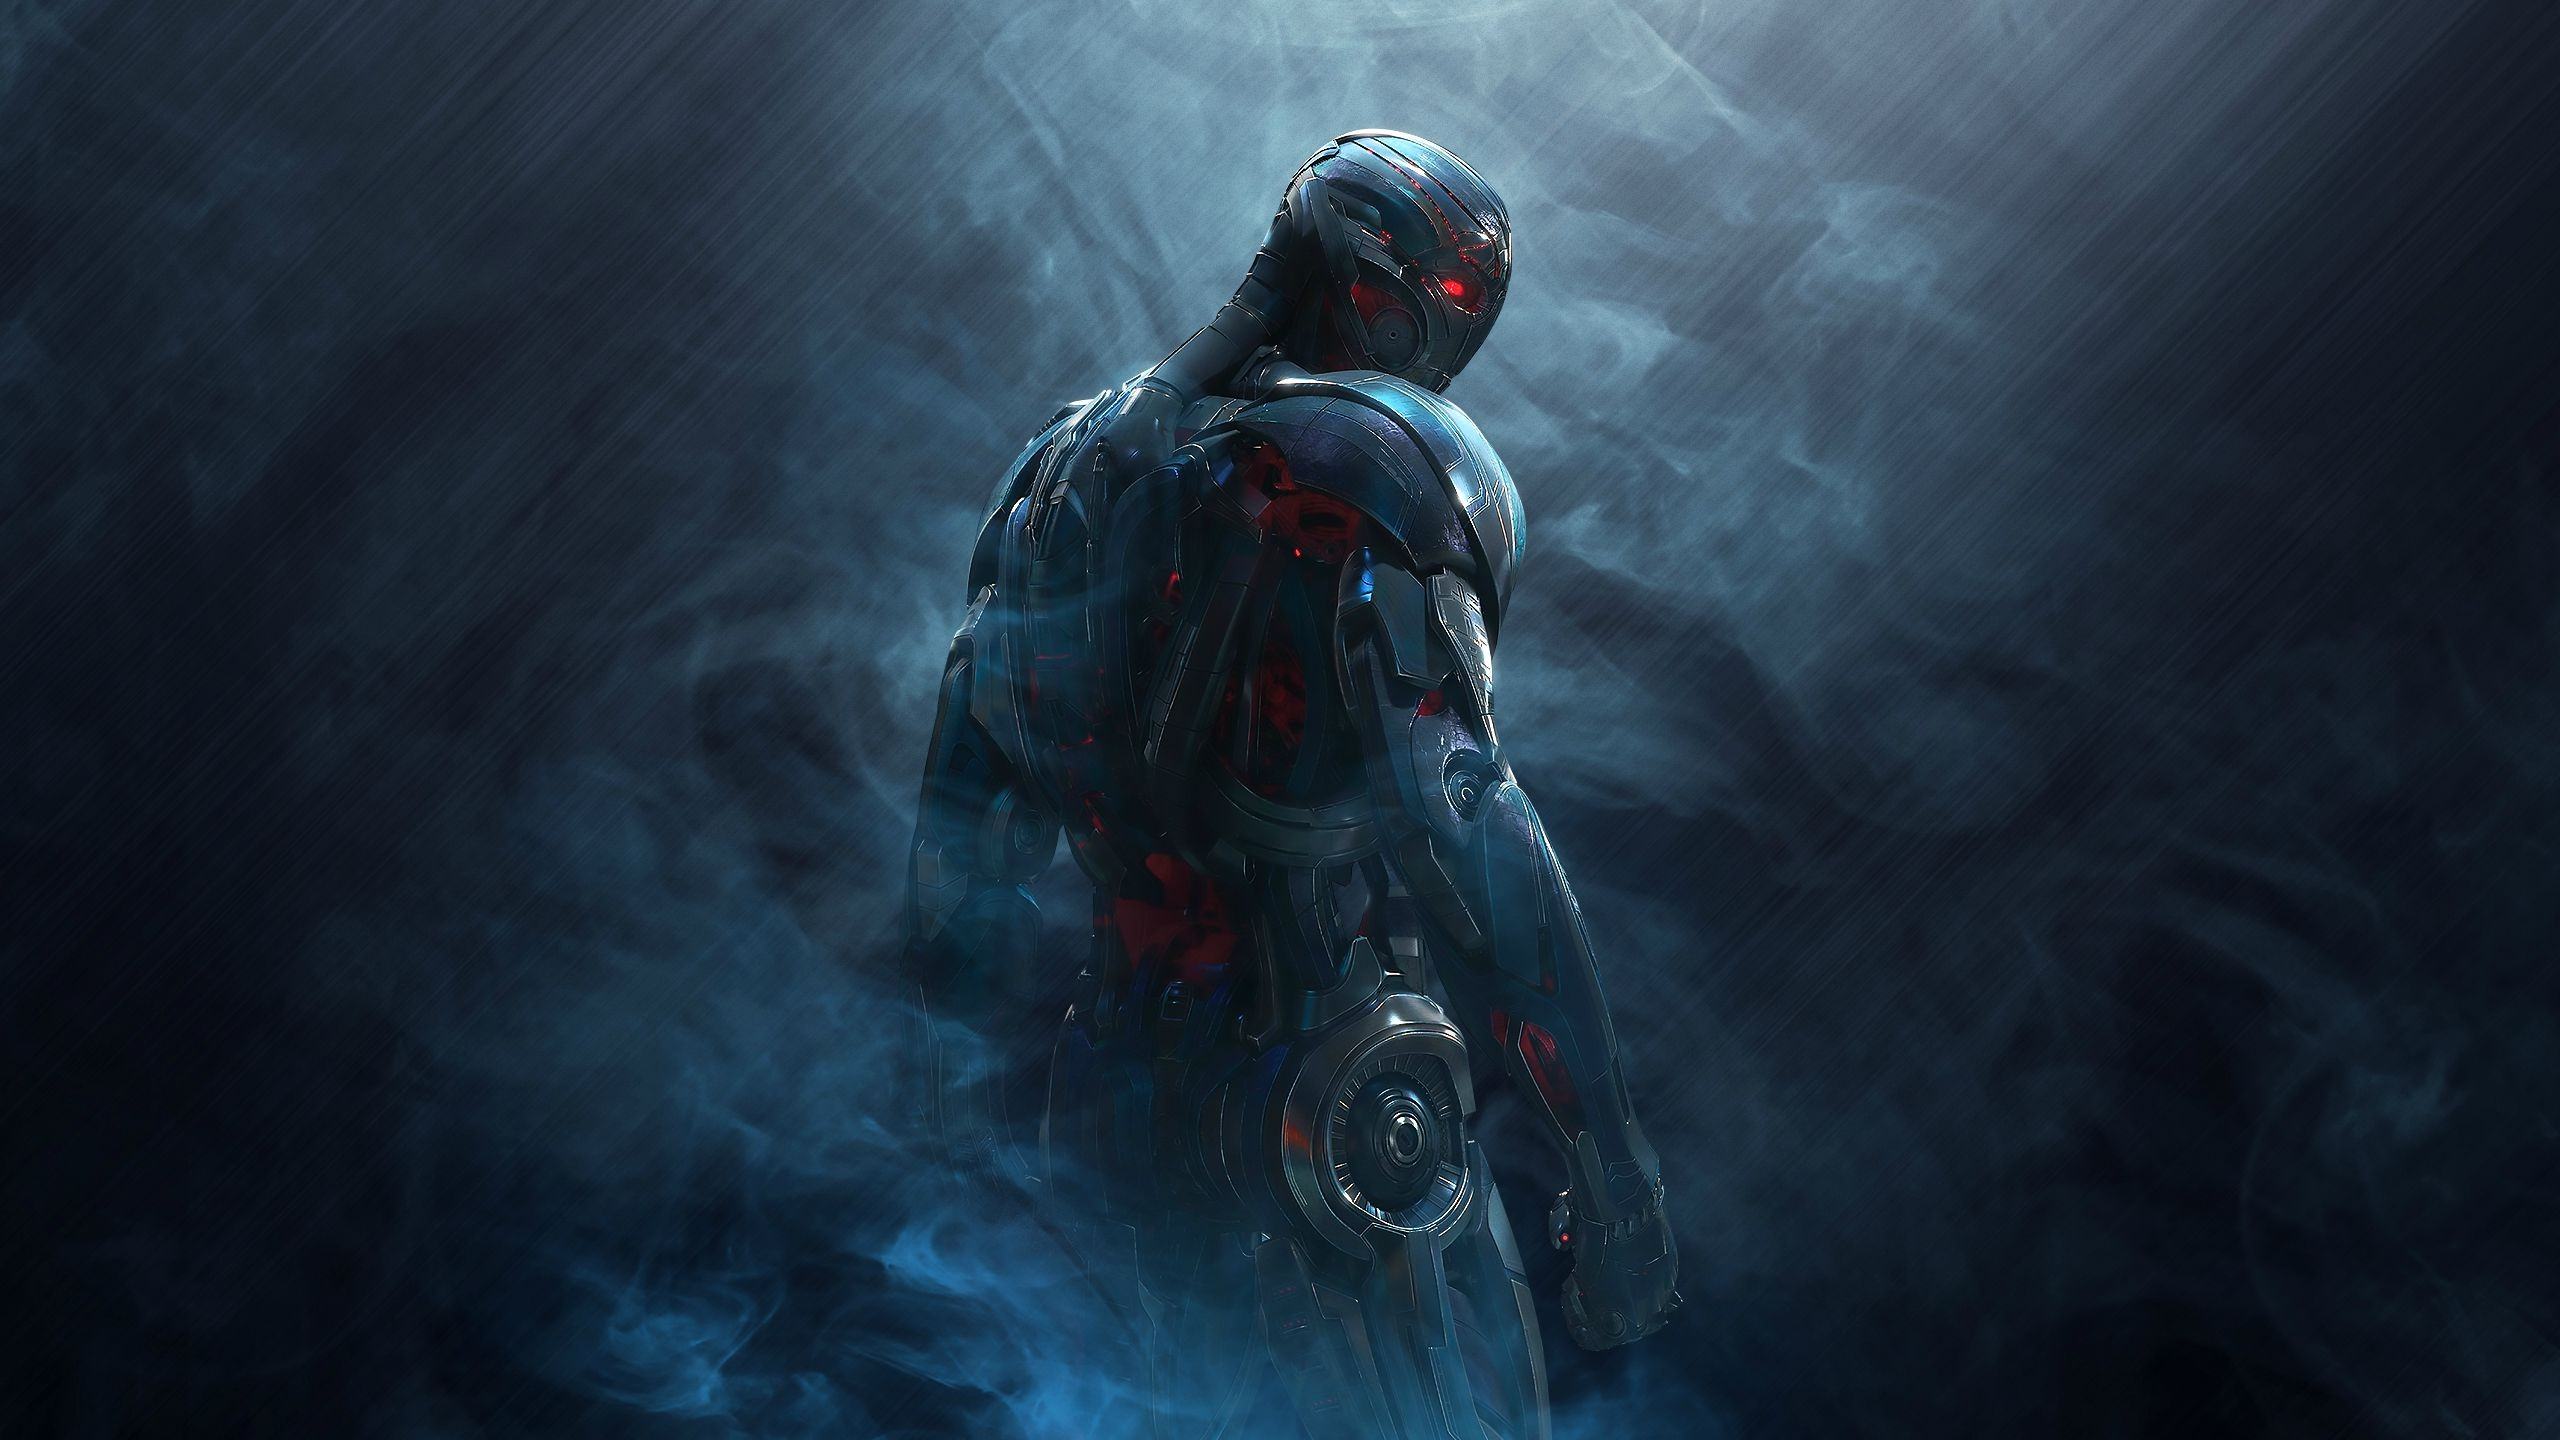 2560x1440 Nightmare Ultron 2016 1440p Resolution Hd 4k Wallpapers